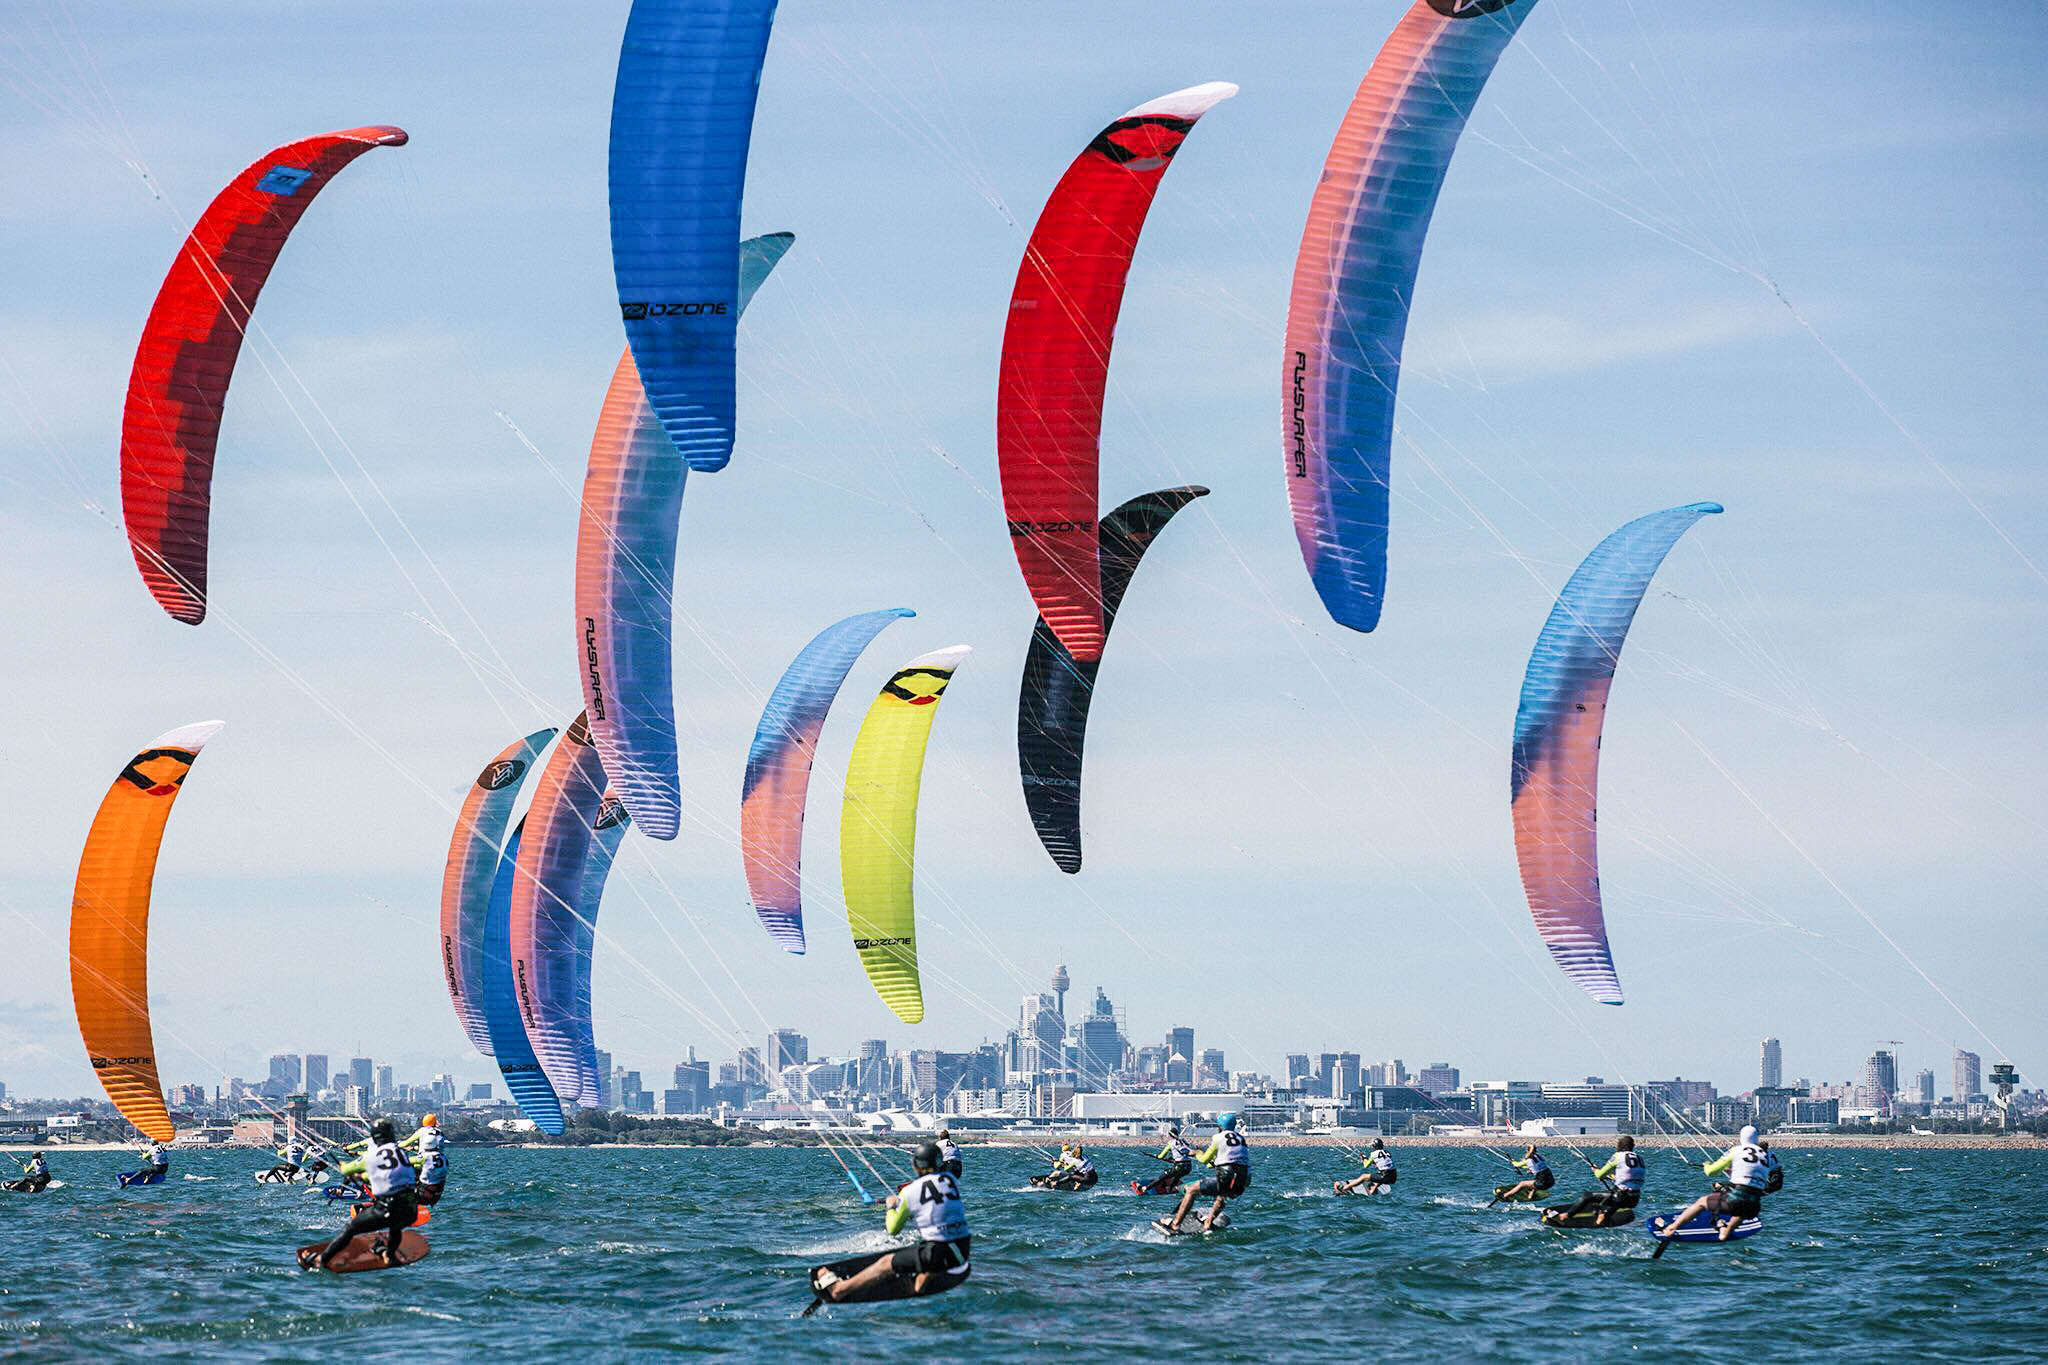 Kite Regatta, Australia